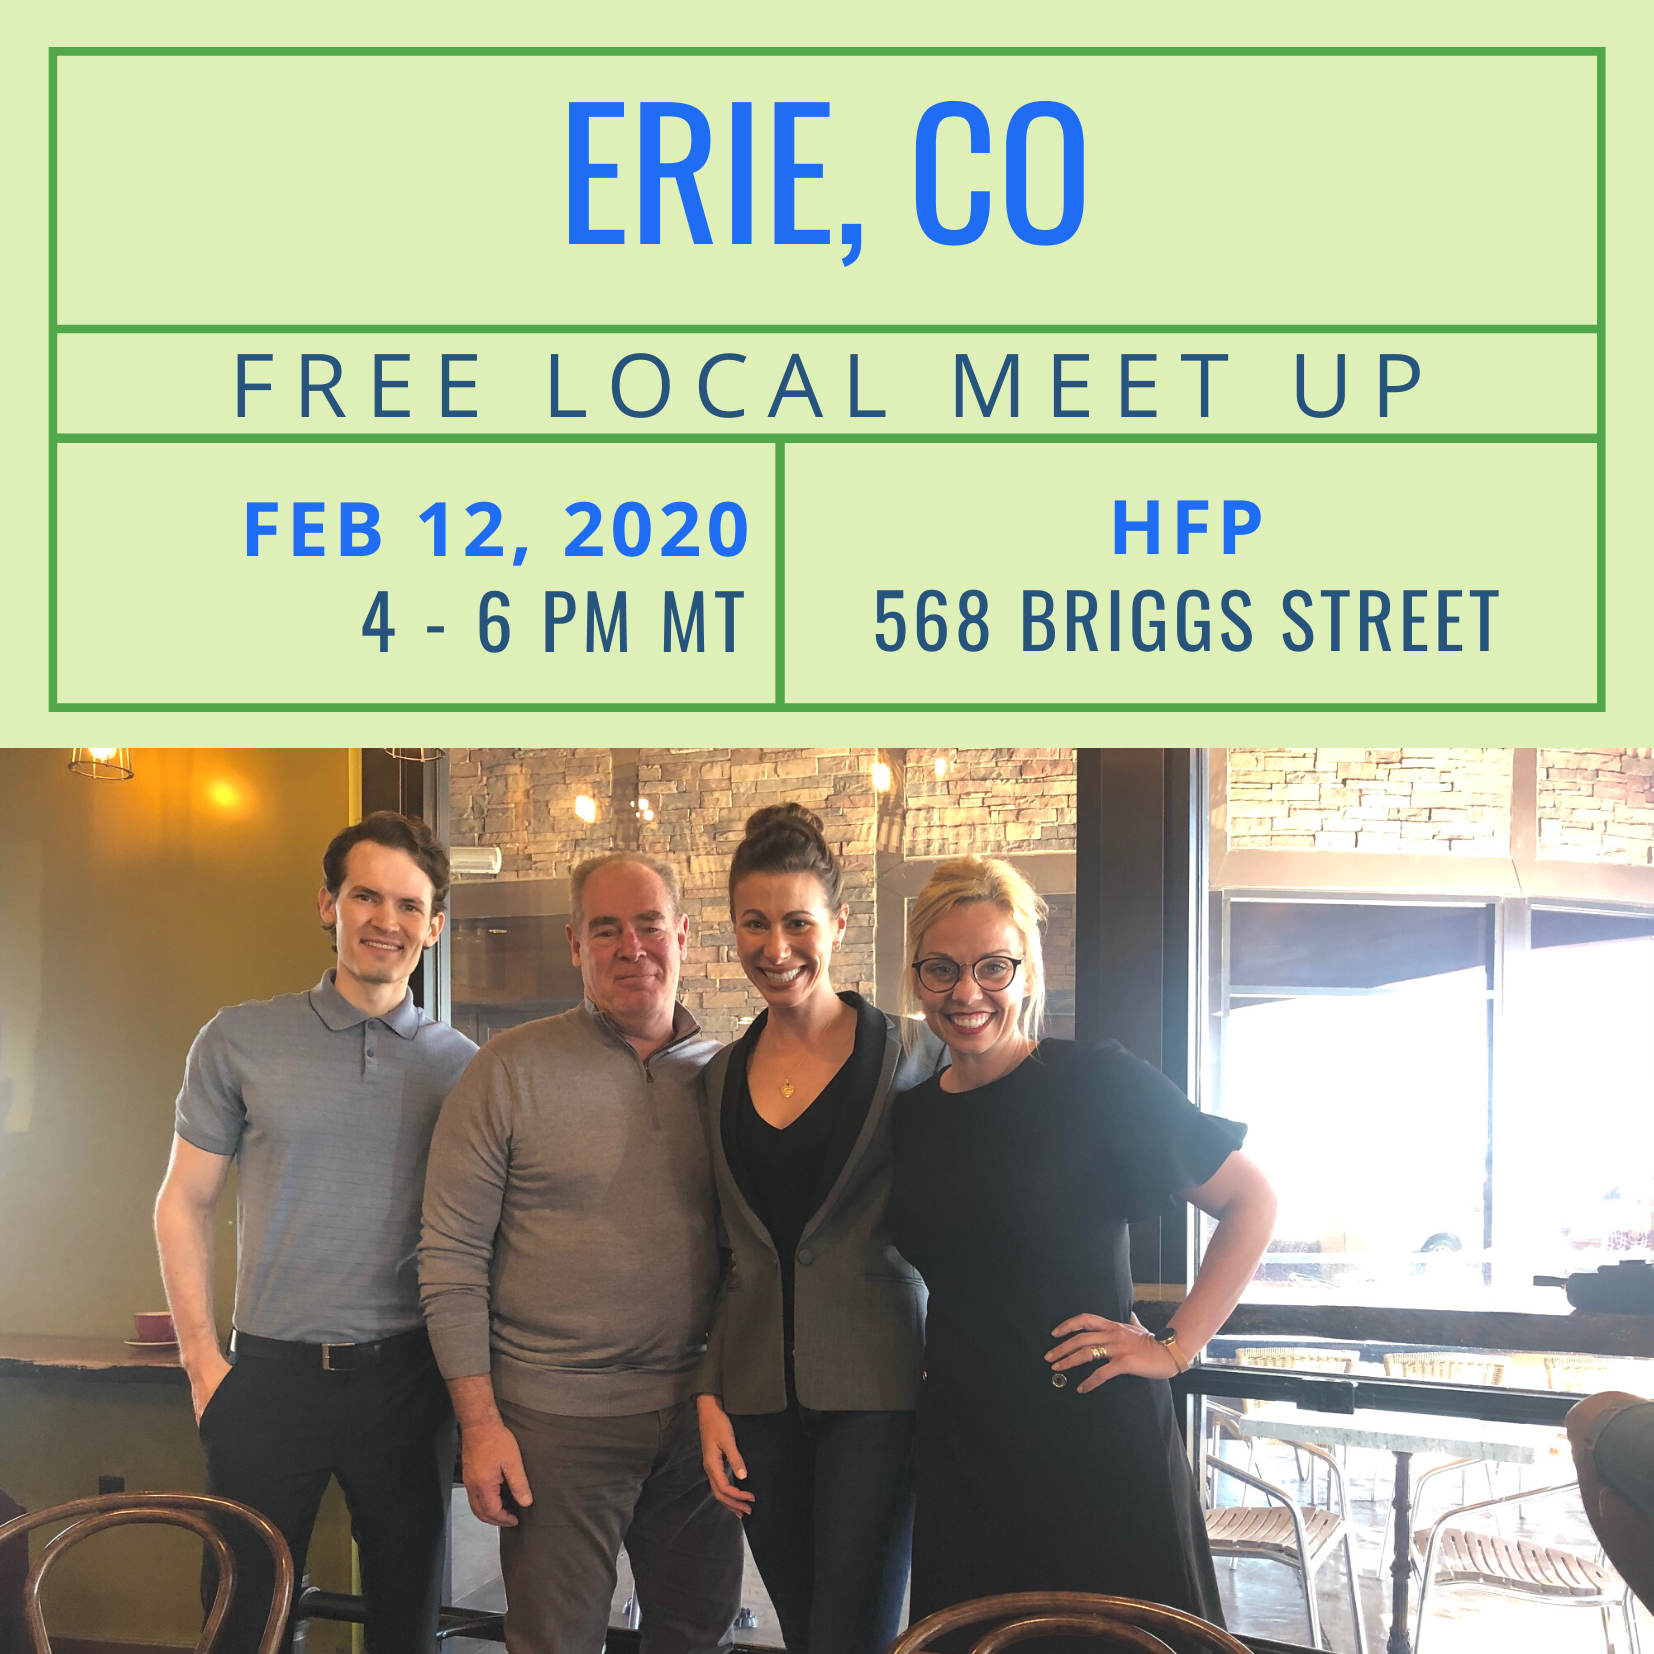 Free Local Meet-Up in Erie, CO on February 12, 2020